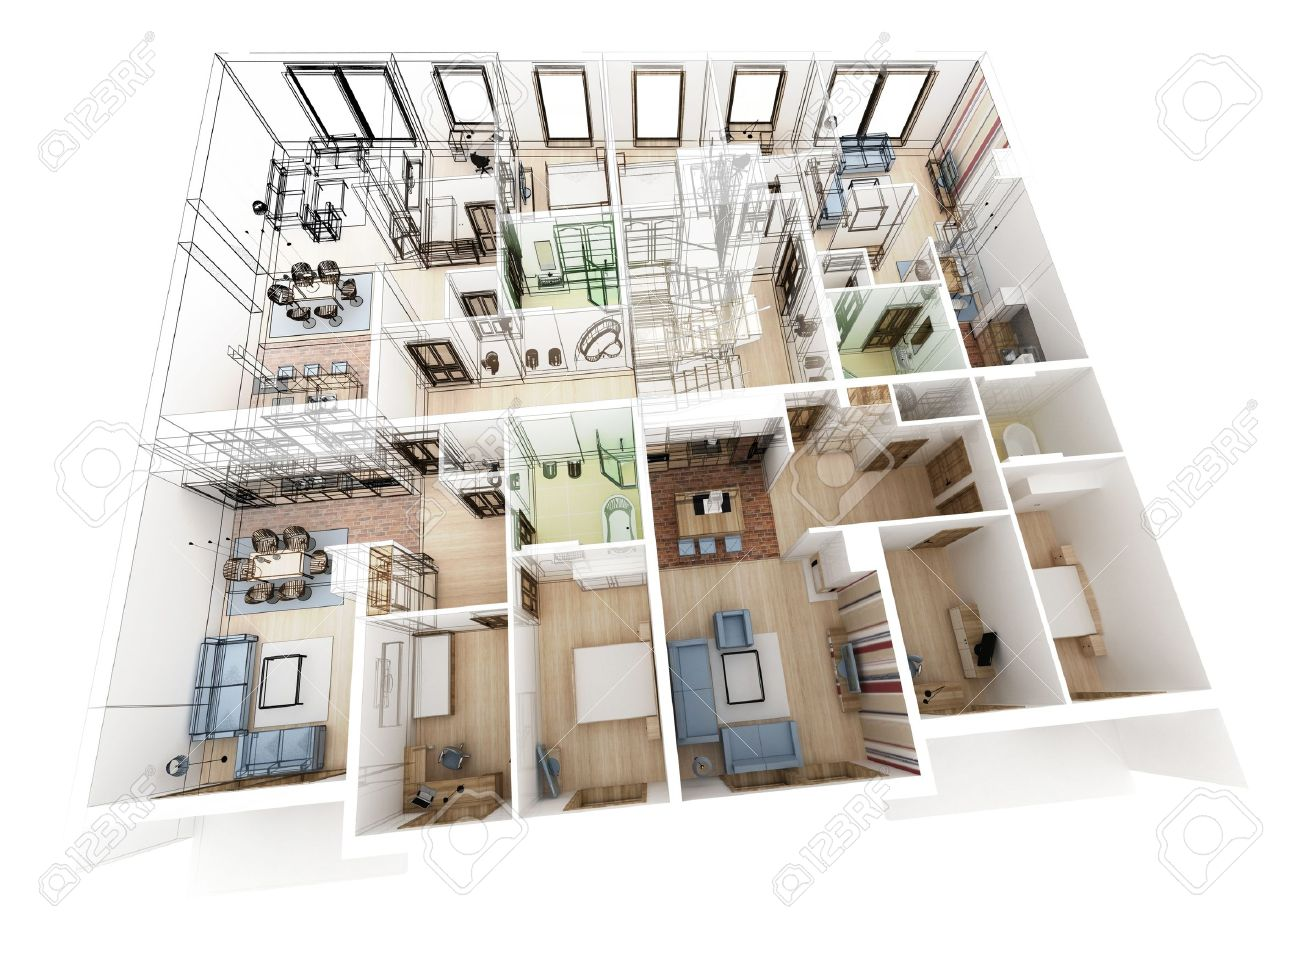 floor plan apartments level top view interior design process